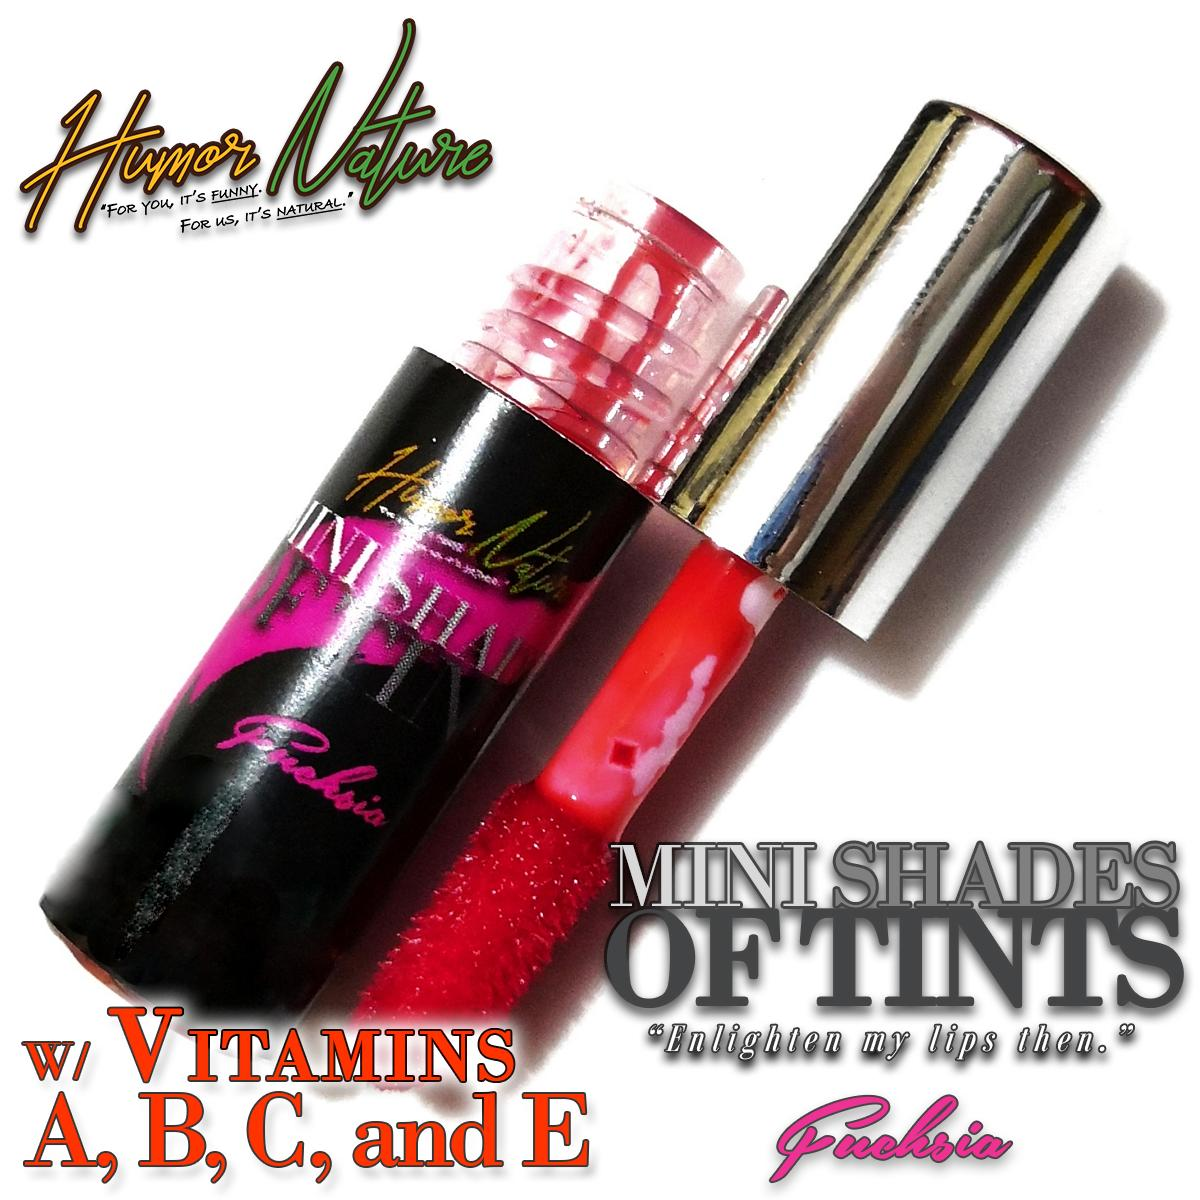 MINI Shades of Tint Organic and Natural Lip & Cheek Tint (Liptint) with Vitamins A, B, C, and E by Humor Nature (1.2mL) Philippines